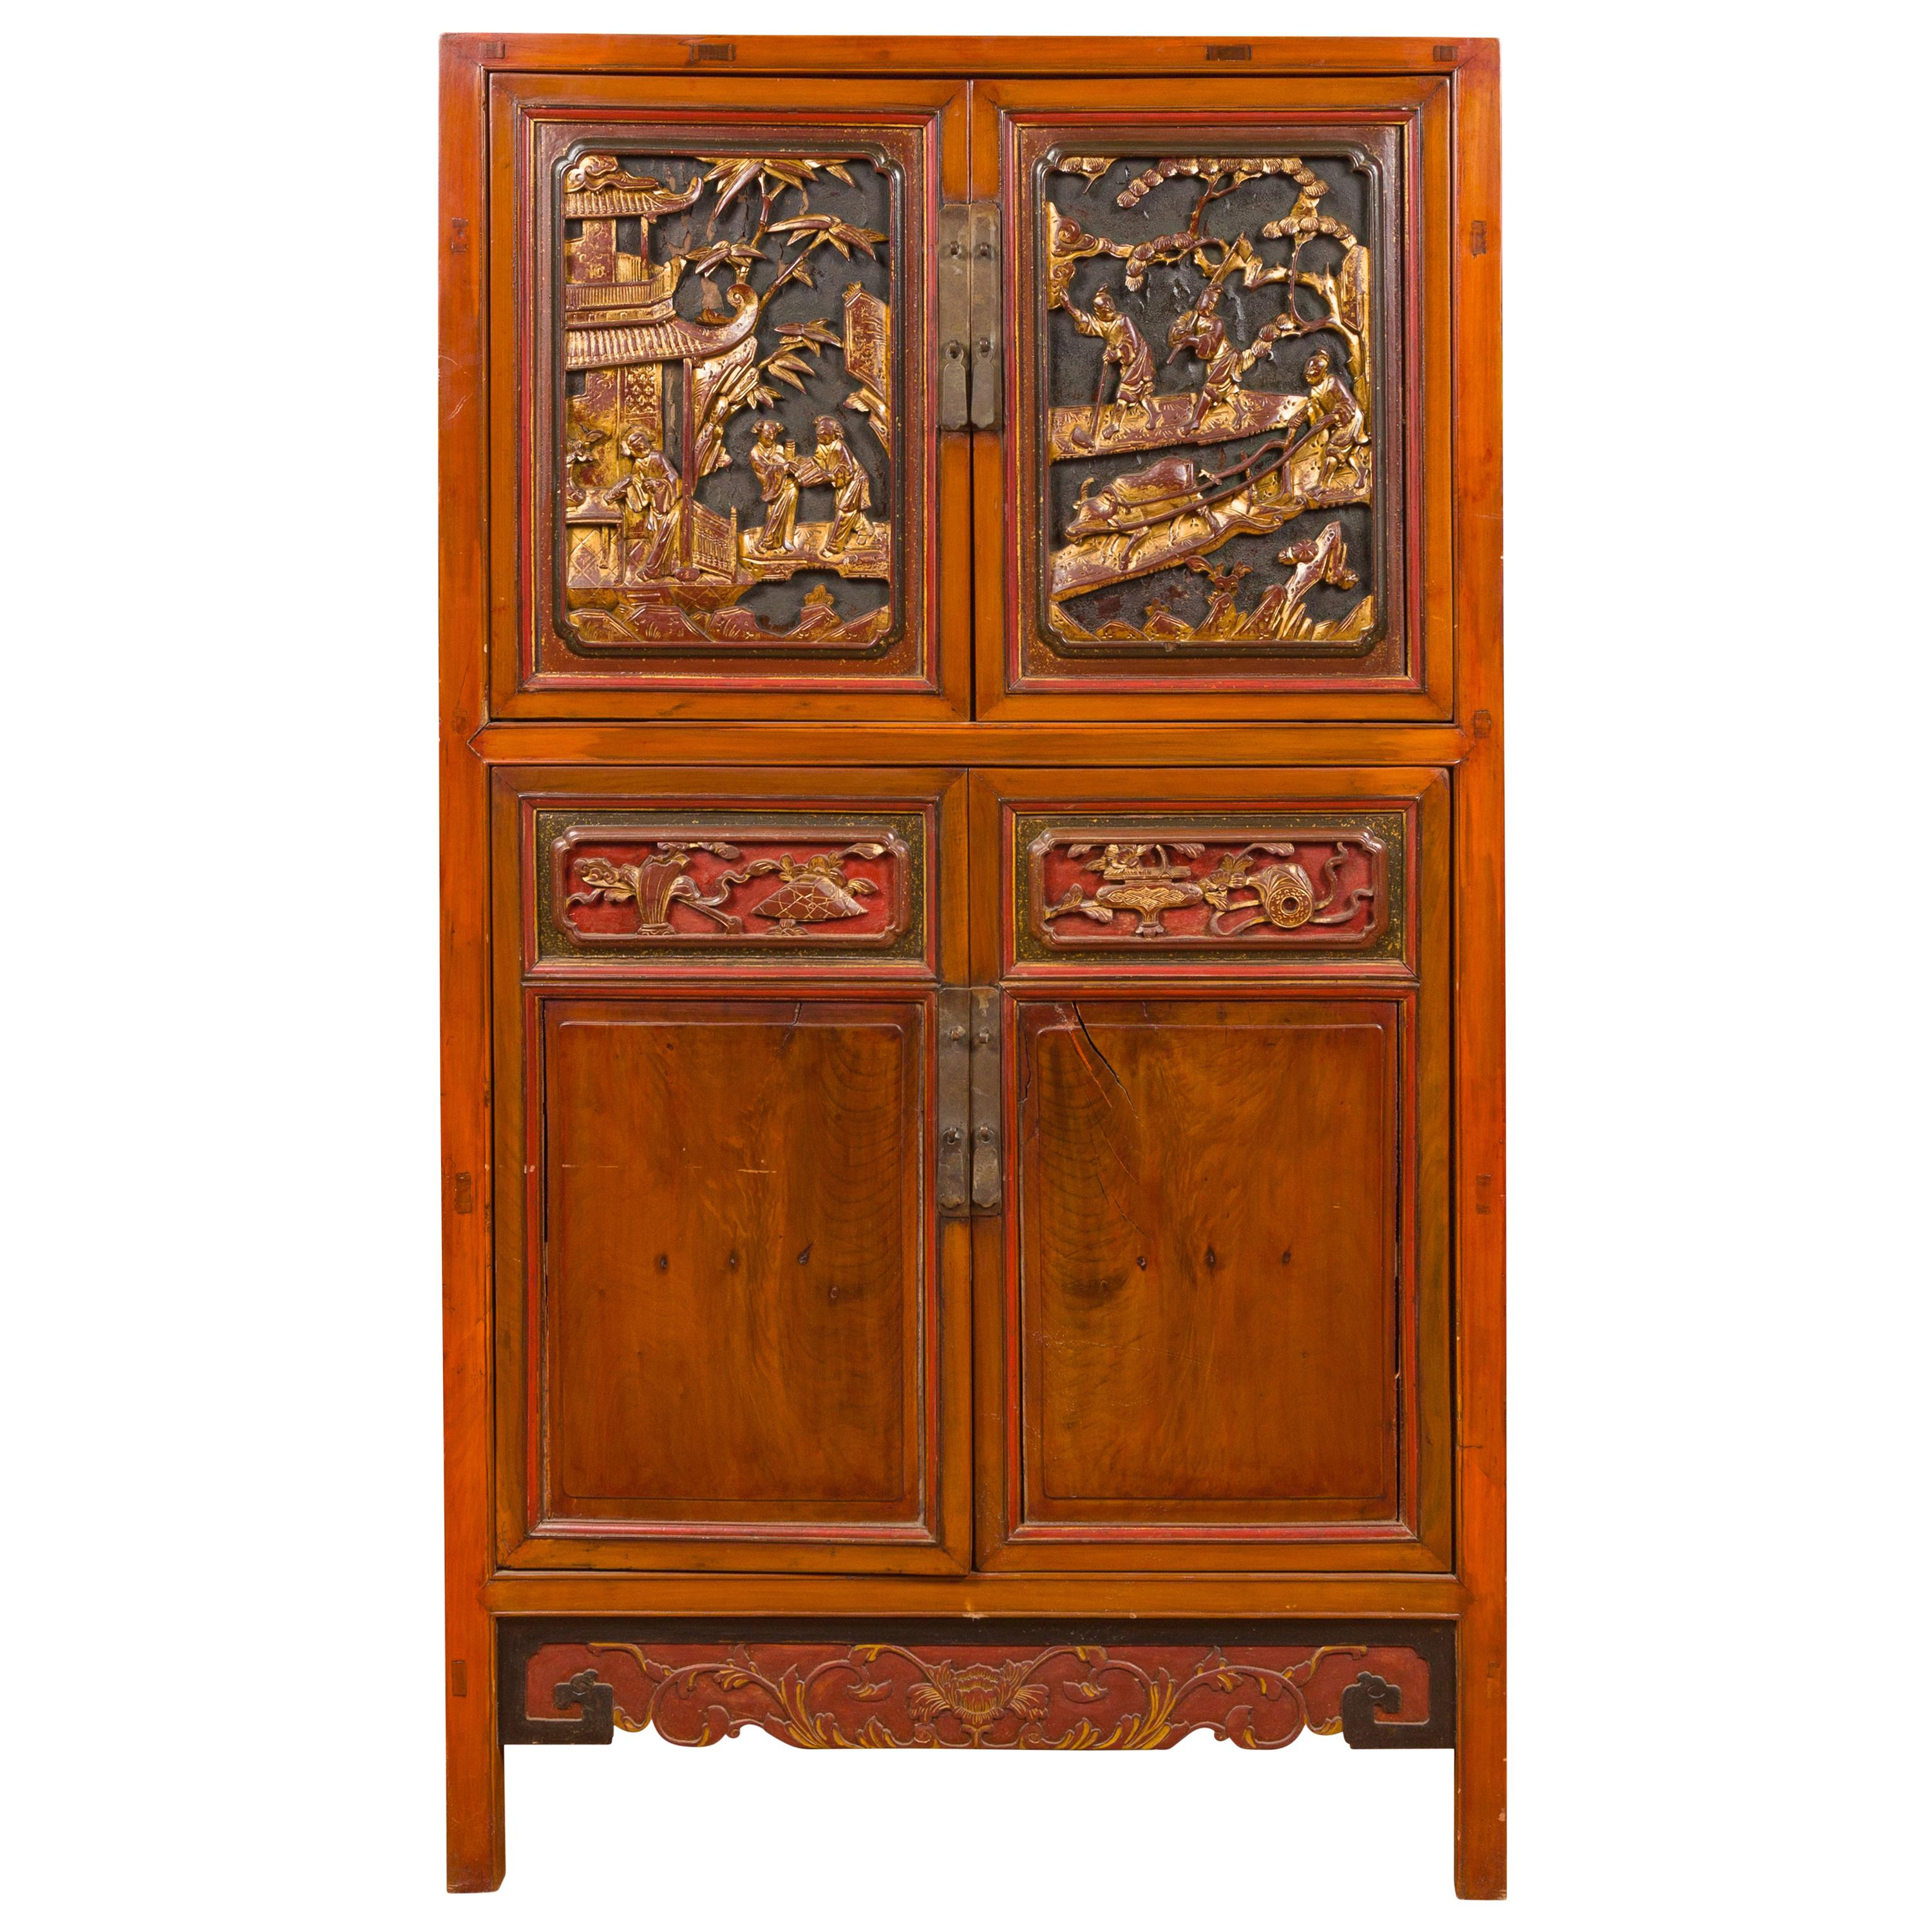 Chinese Ming Dynasty Style Cabinet with Gilt Carved Court and Work Scenes